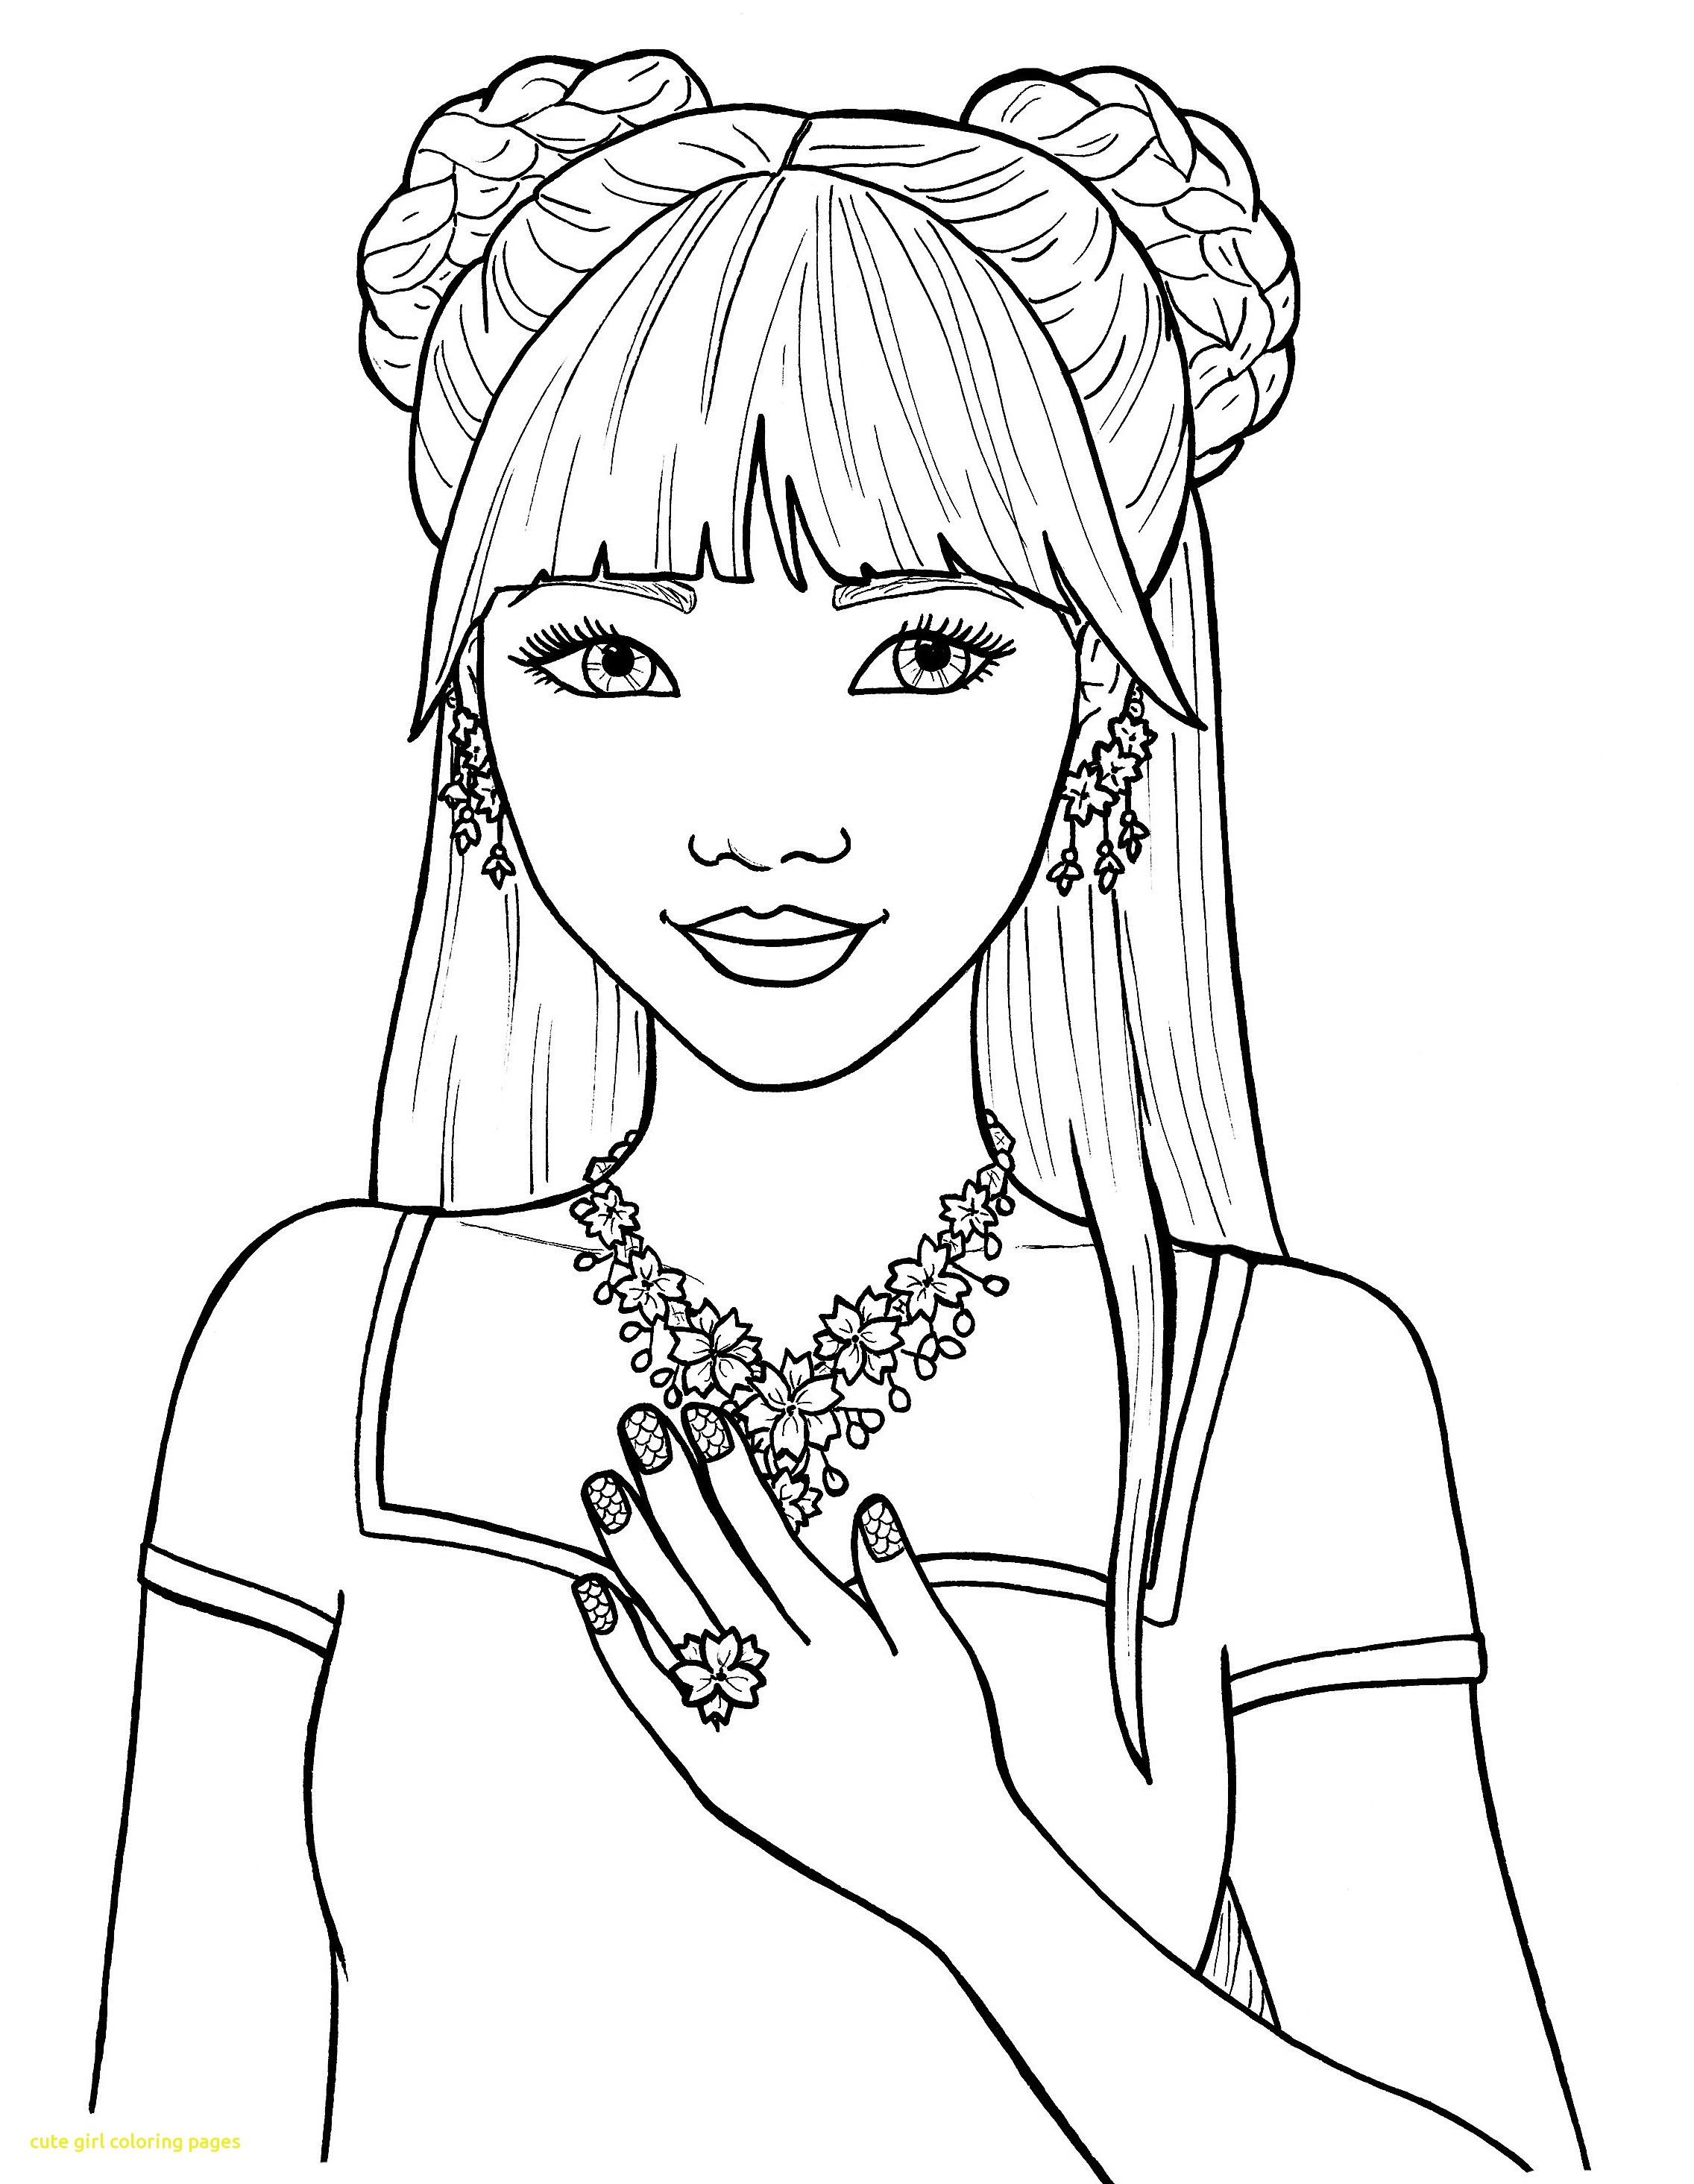 woman coloring pages adult coloring page girl portrait and clothes colouring pages coloring woman